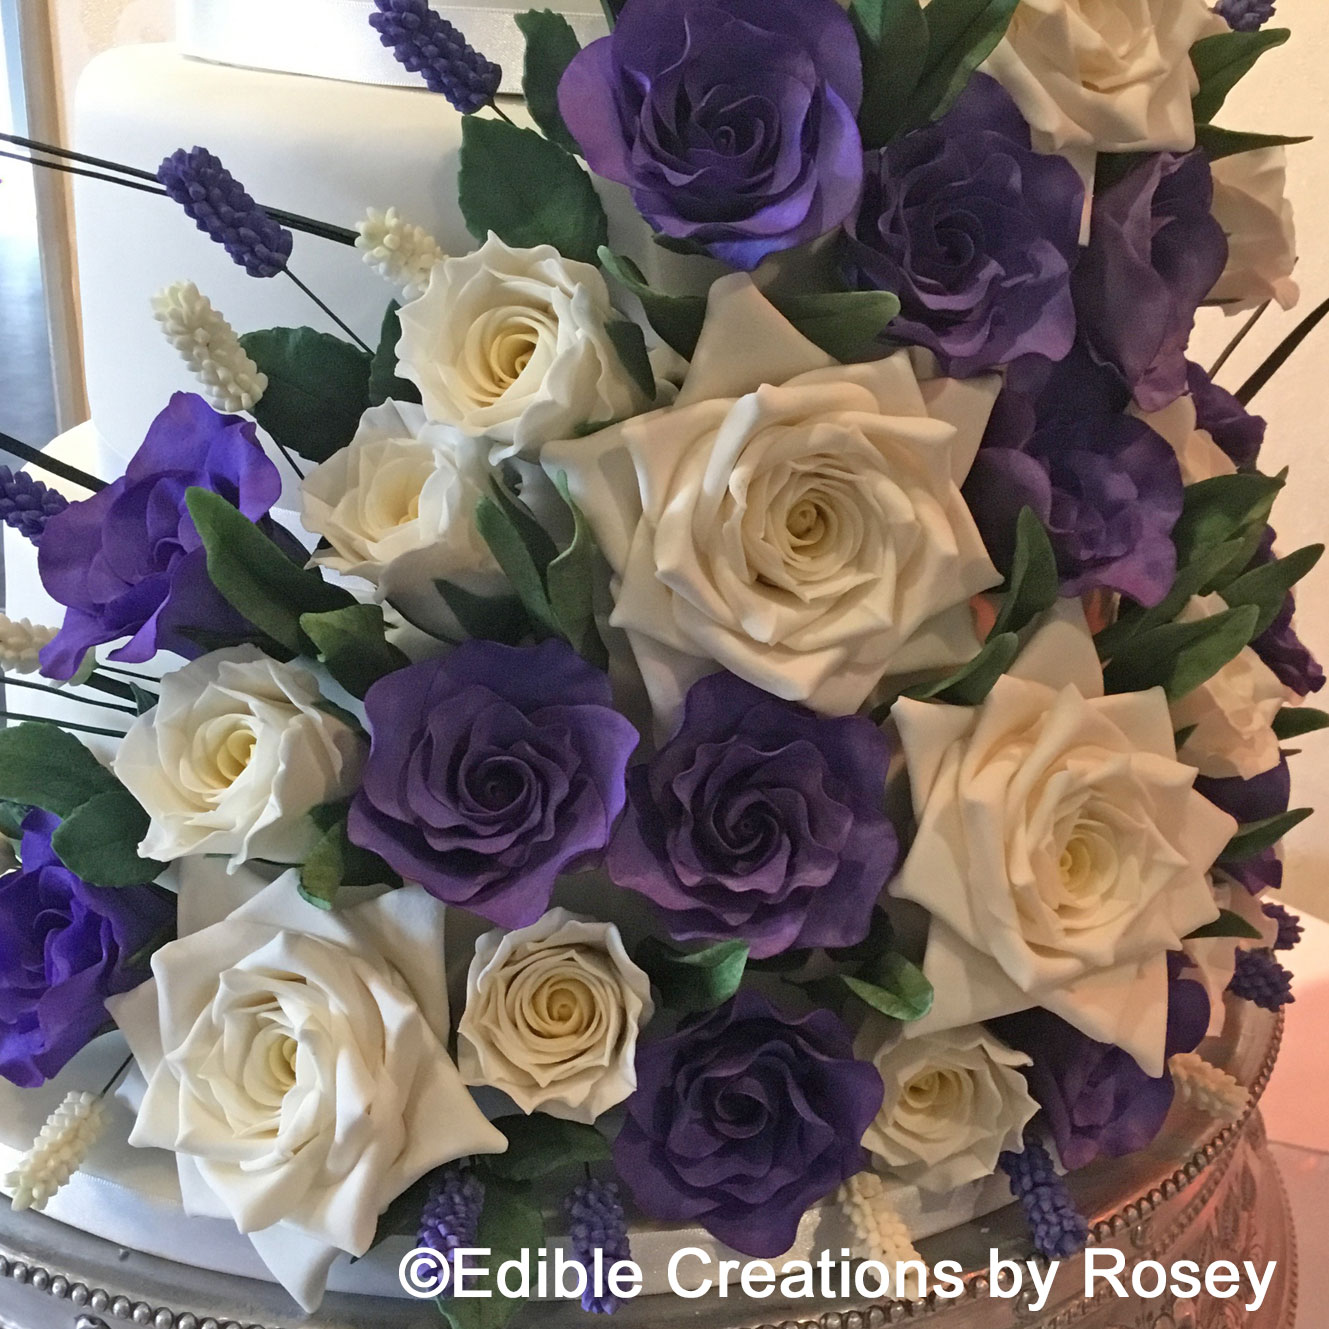 Sugarpaste Flowers By Edible Creations By Rosey South West London